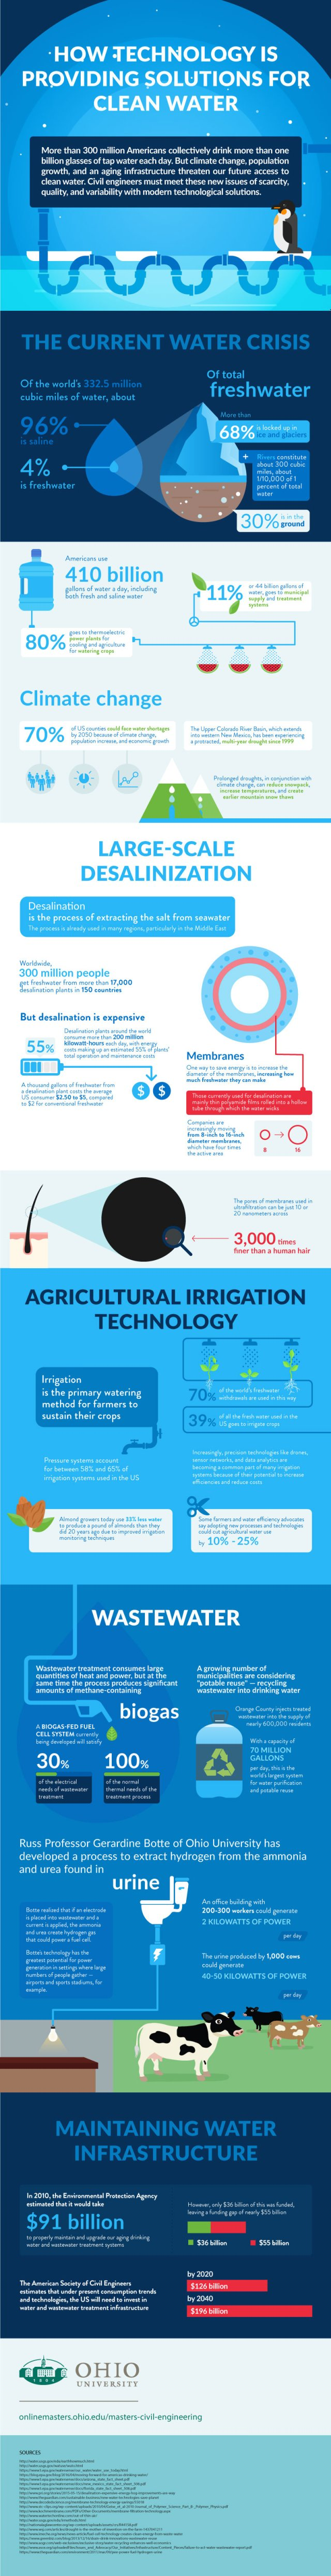 How Technology is Providing Solutions for Clean Water